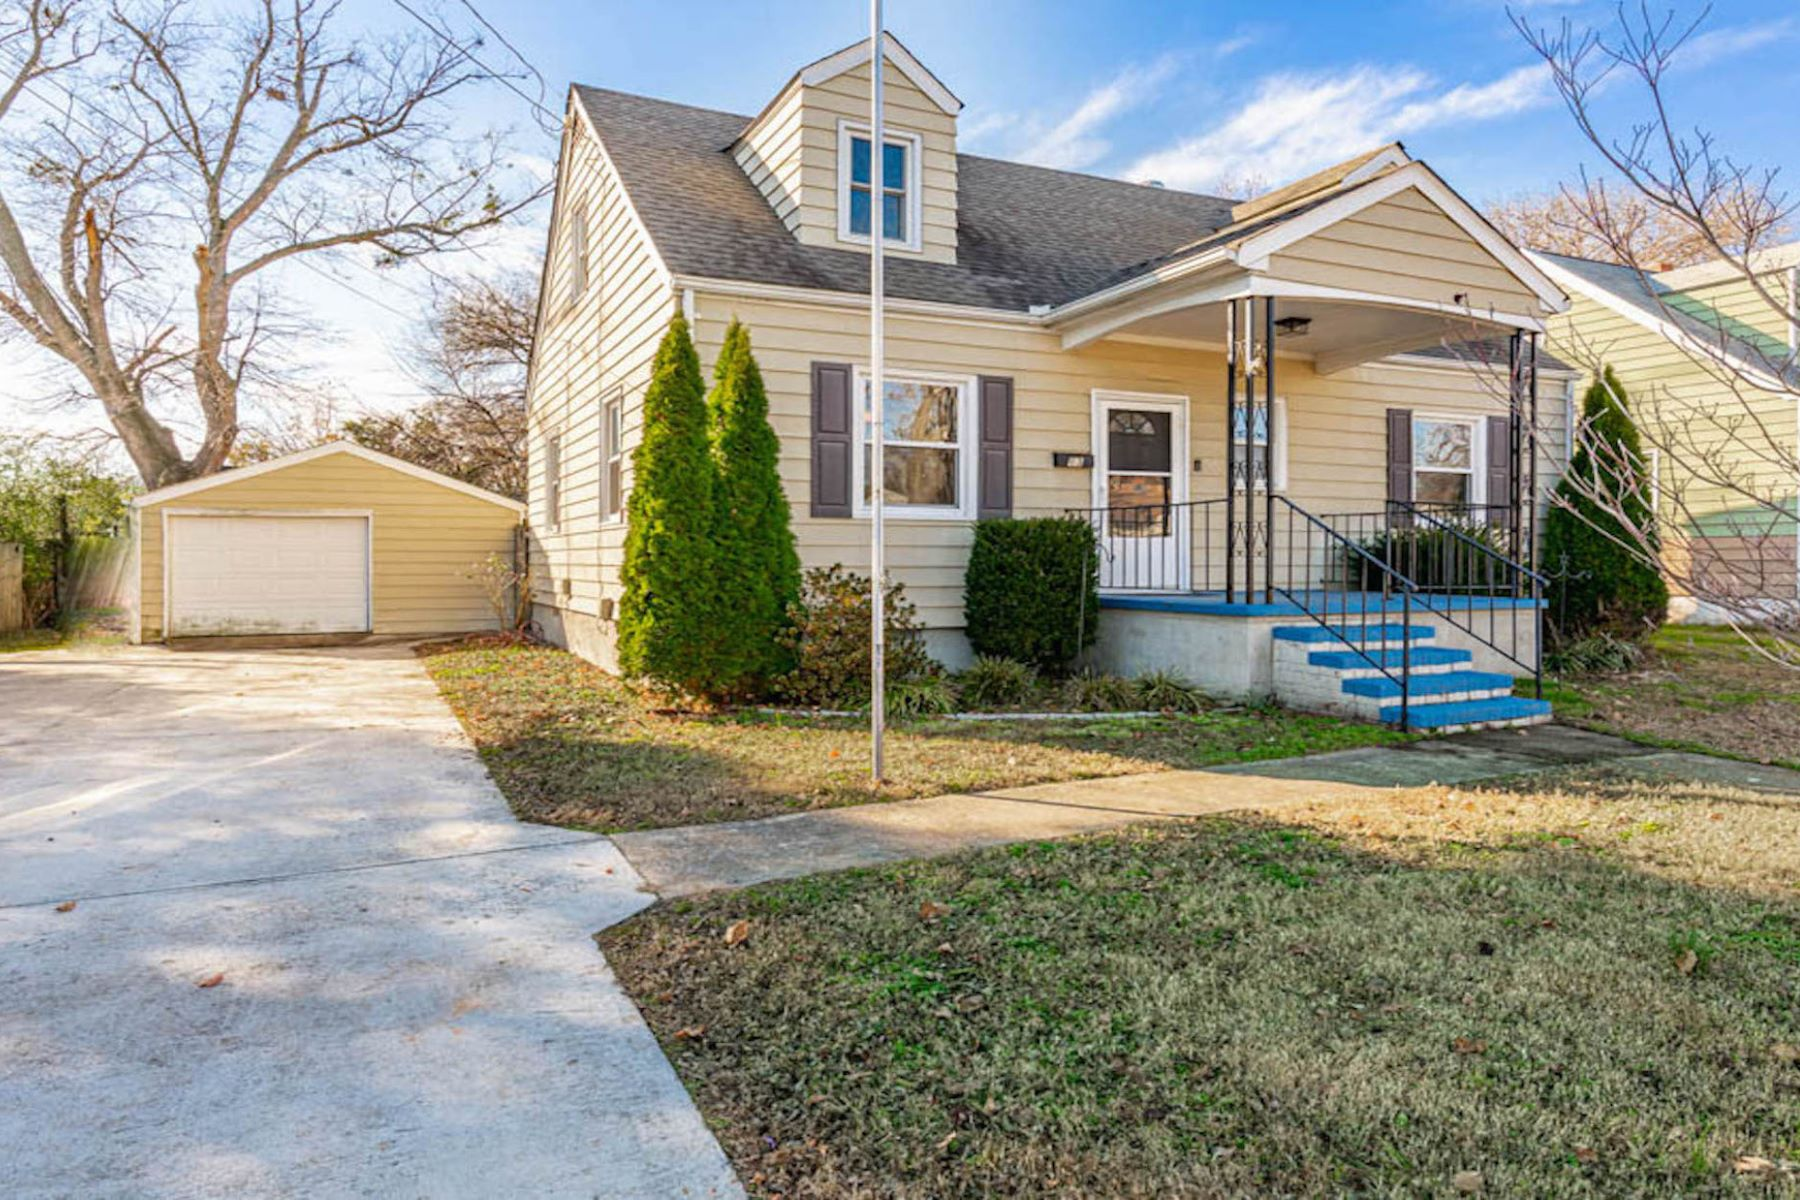 Single Family Homes for Active at FOX HILL 13 Gibson Rd Hampton, Virginia 23669 United States